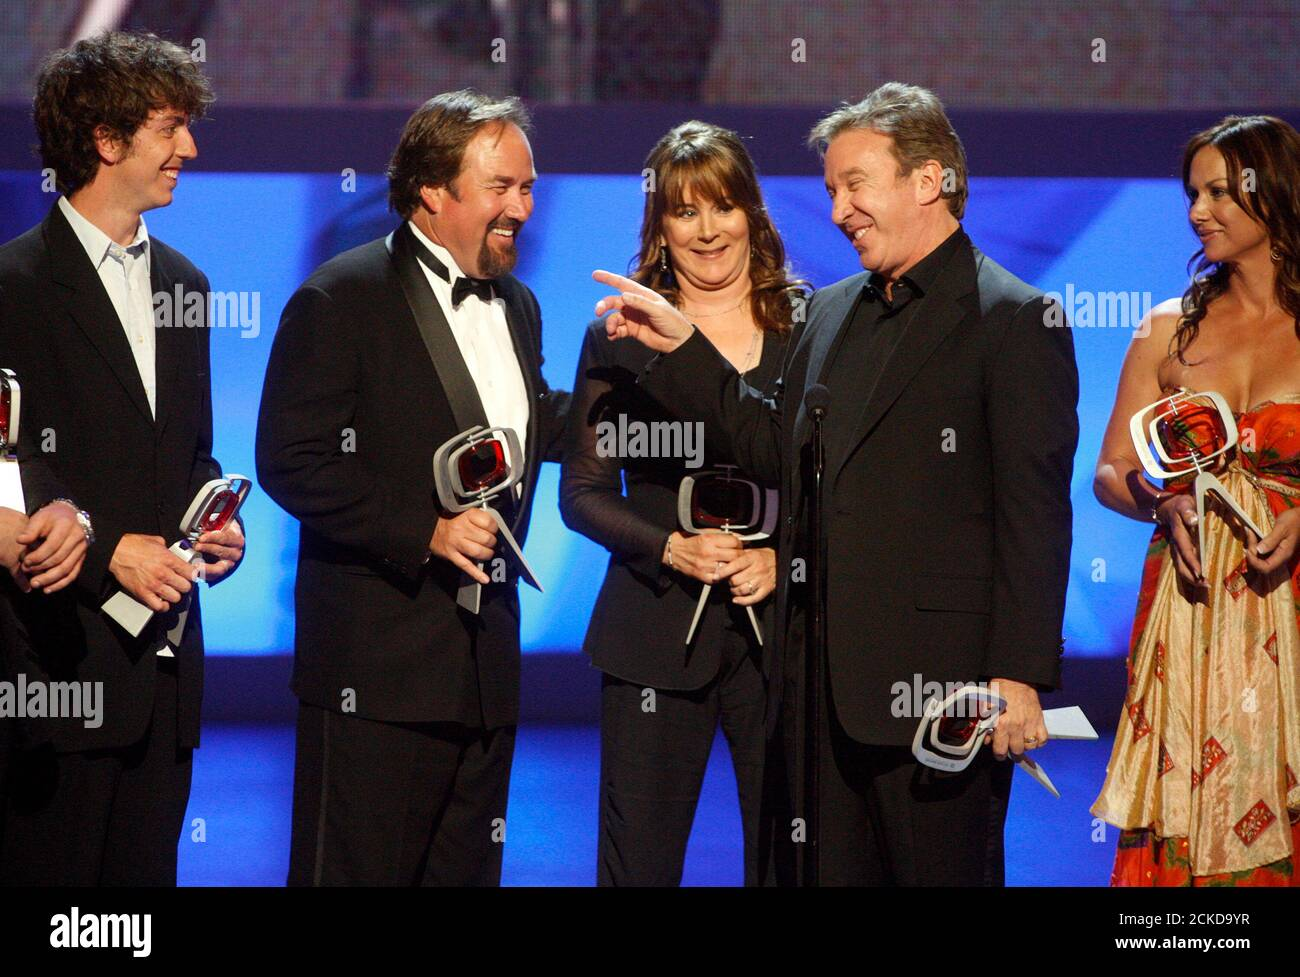 Debbe Dunning High Resolution Stock Photography And Images Alamy